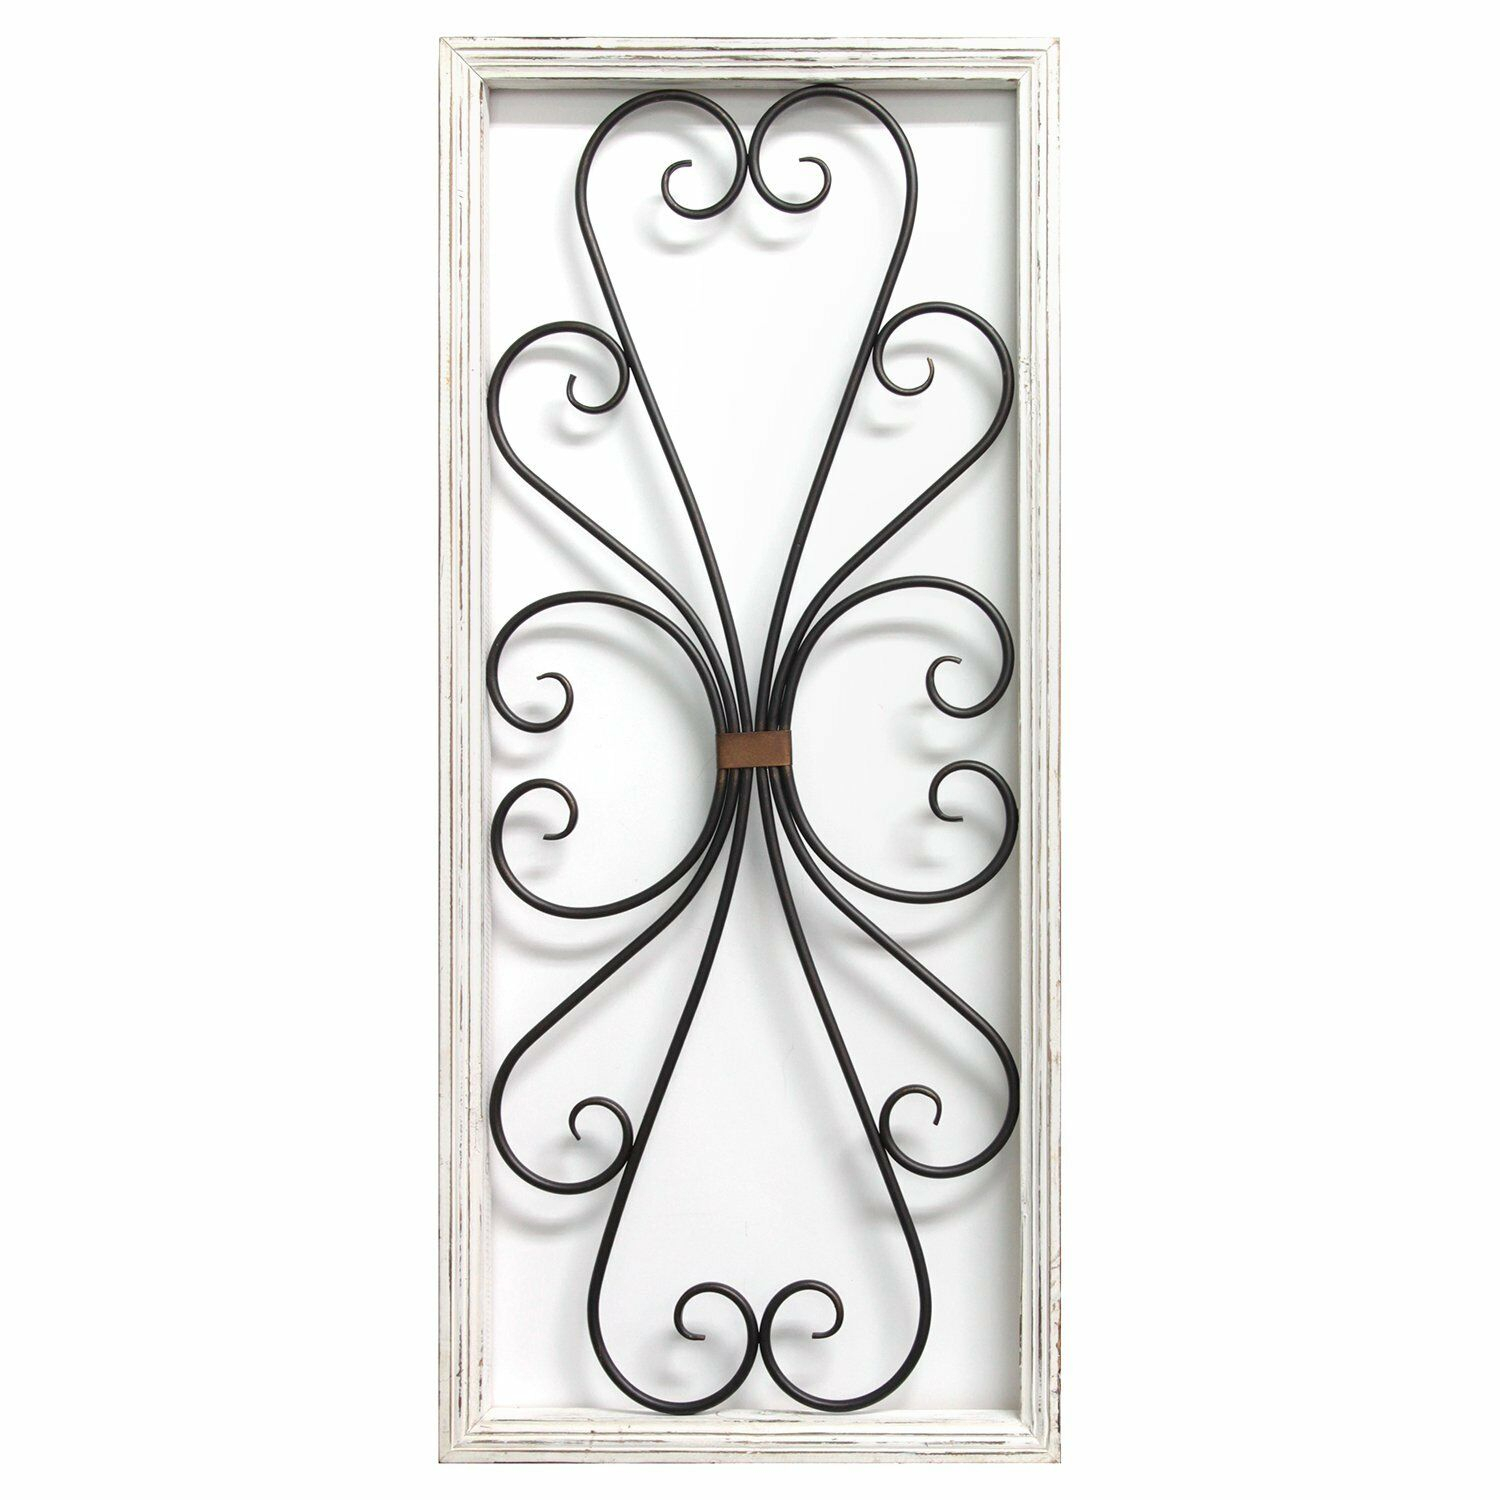 Details About White And Black Scroll Panel Hanging Interior Wall Art Home  Decor intended for Scroll Panel Wall Decor (Image 9 of 30)